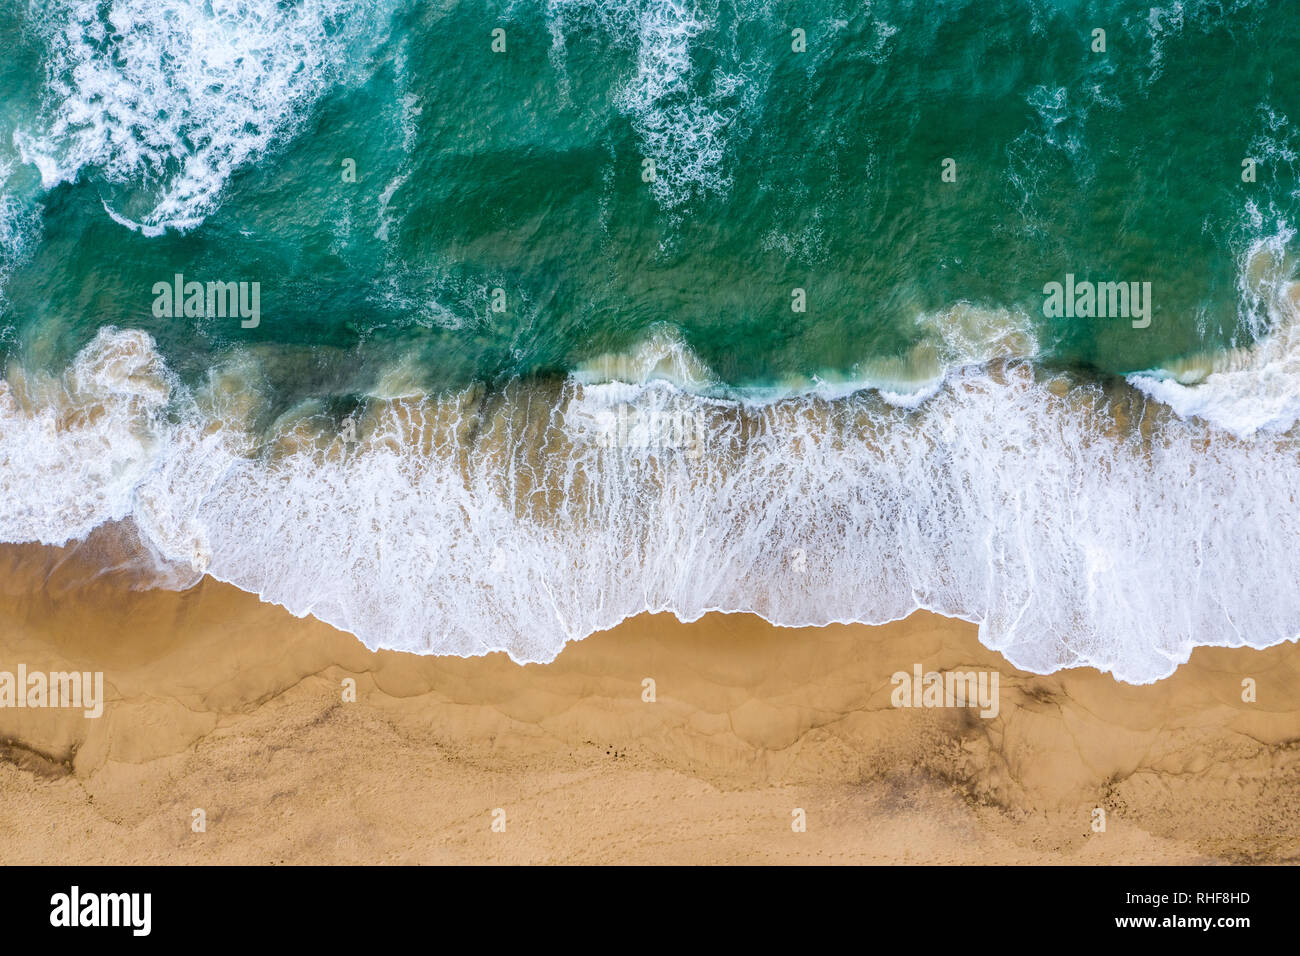 Top down view of the waves crashing onto the sand at Dudley Beach - Newcastle Australia - Stock Image